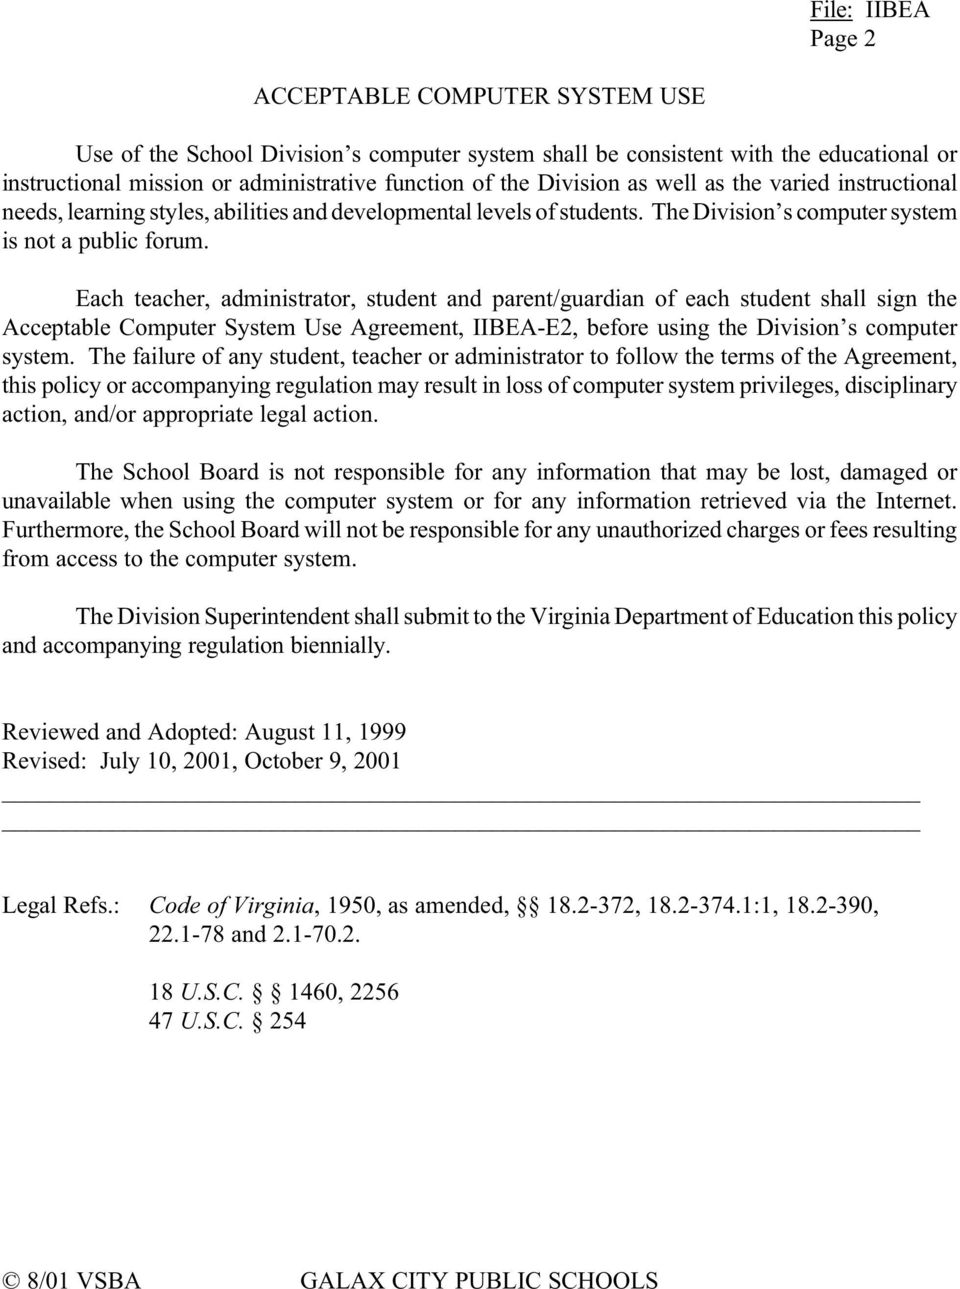 Each teacher, administrator, student and parent/guardian of each student shall sign the Acceptable Computer ystem Use Agreement, IIBEA-E2, before using the Division s computer system.